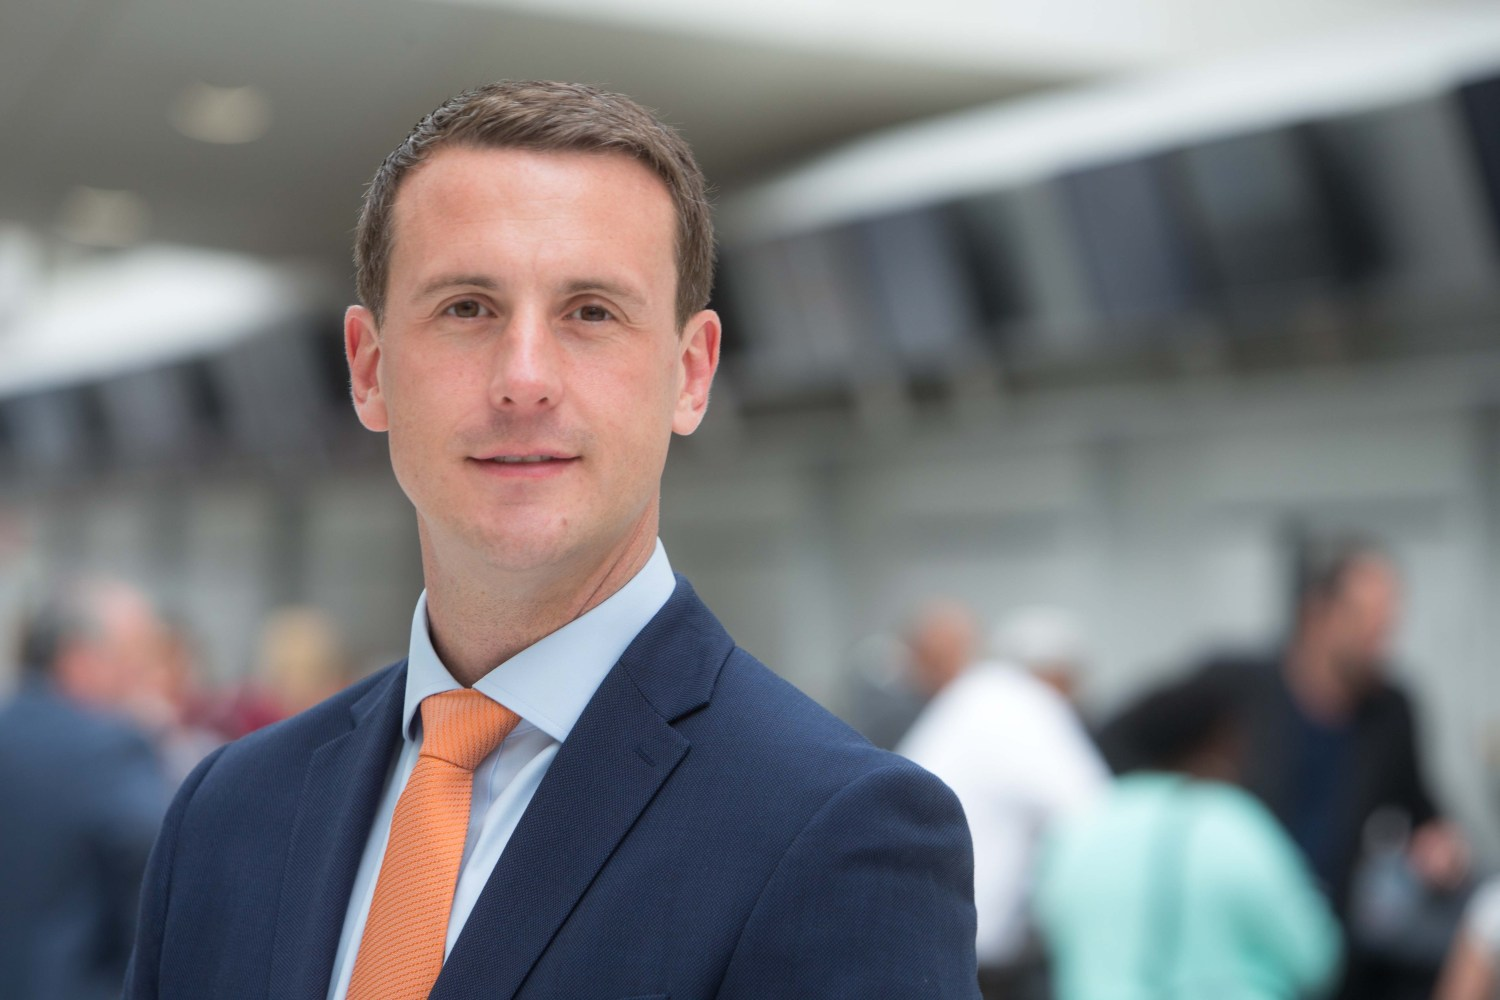 Glasgow Airport Managing Director Mark Johnston